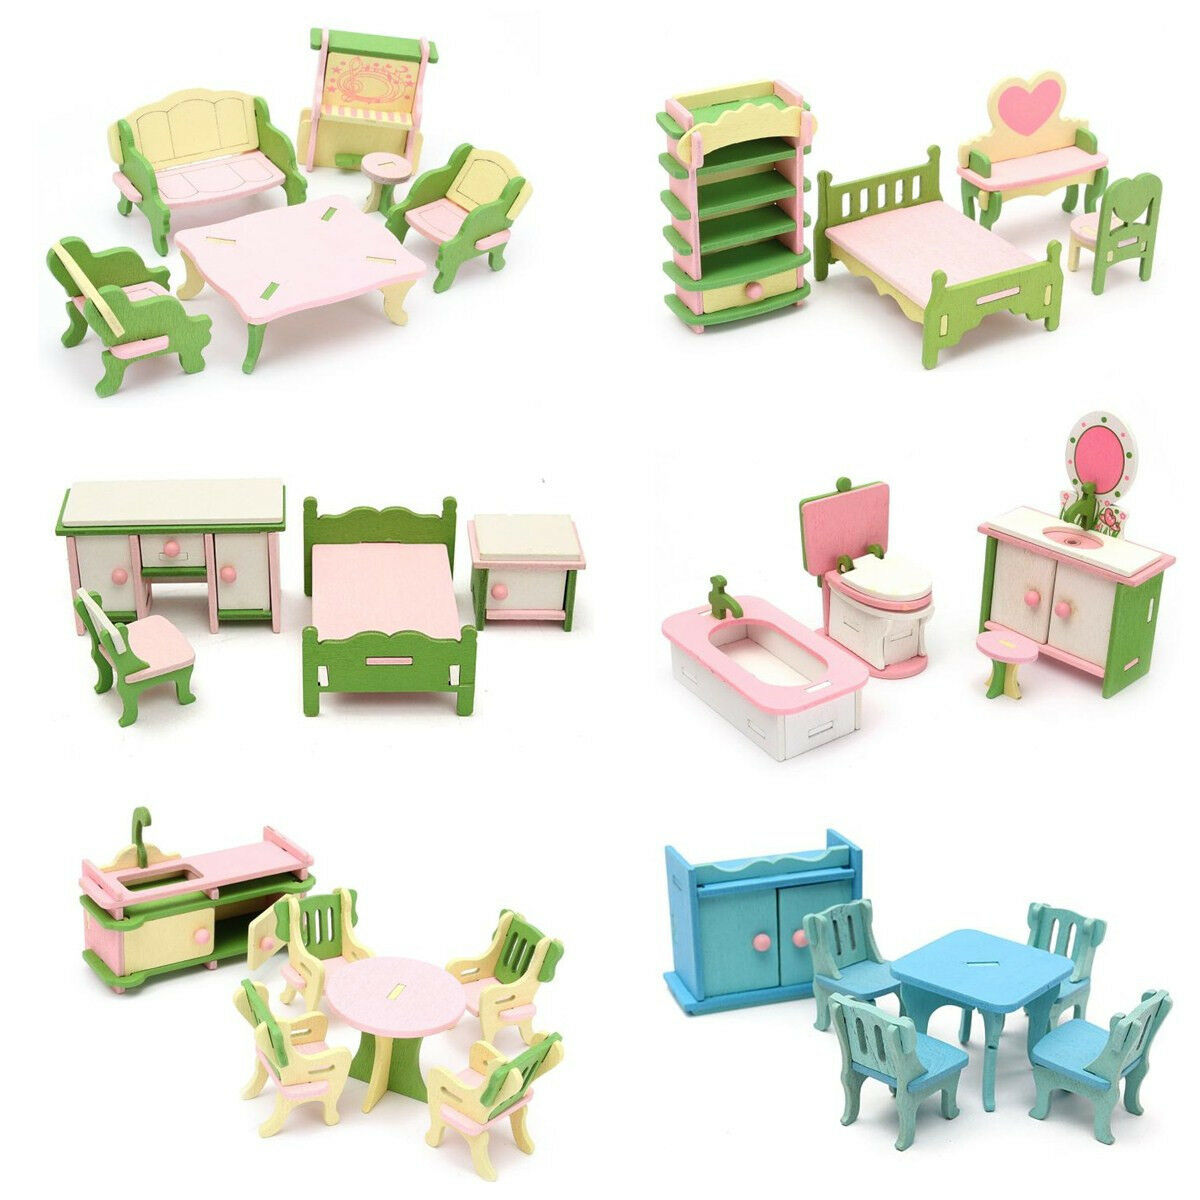 Wooden furniture dolls house family miniature 6 set room child kids gift toys picclick uk Dolls wooden furniture